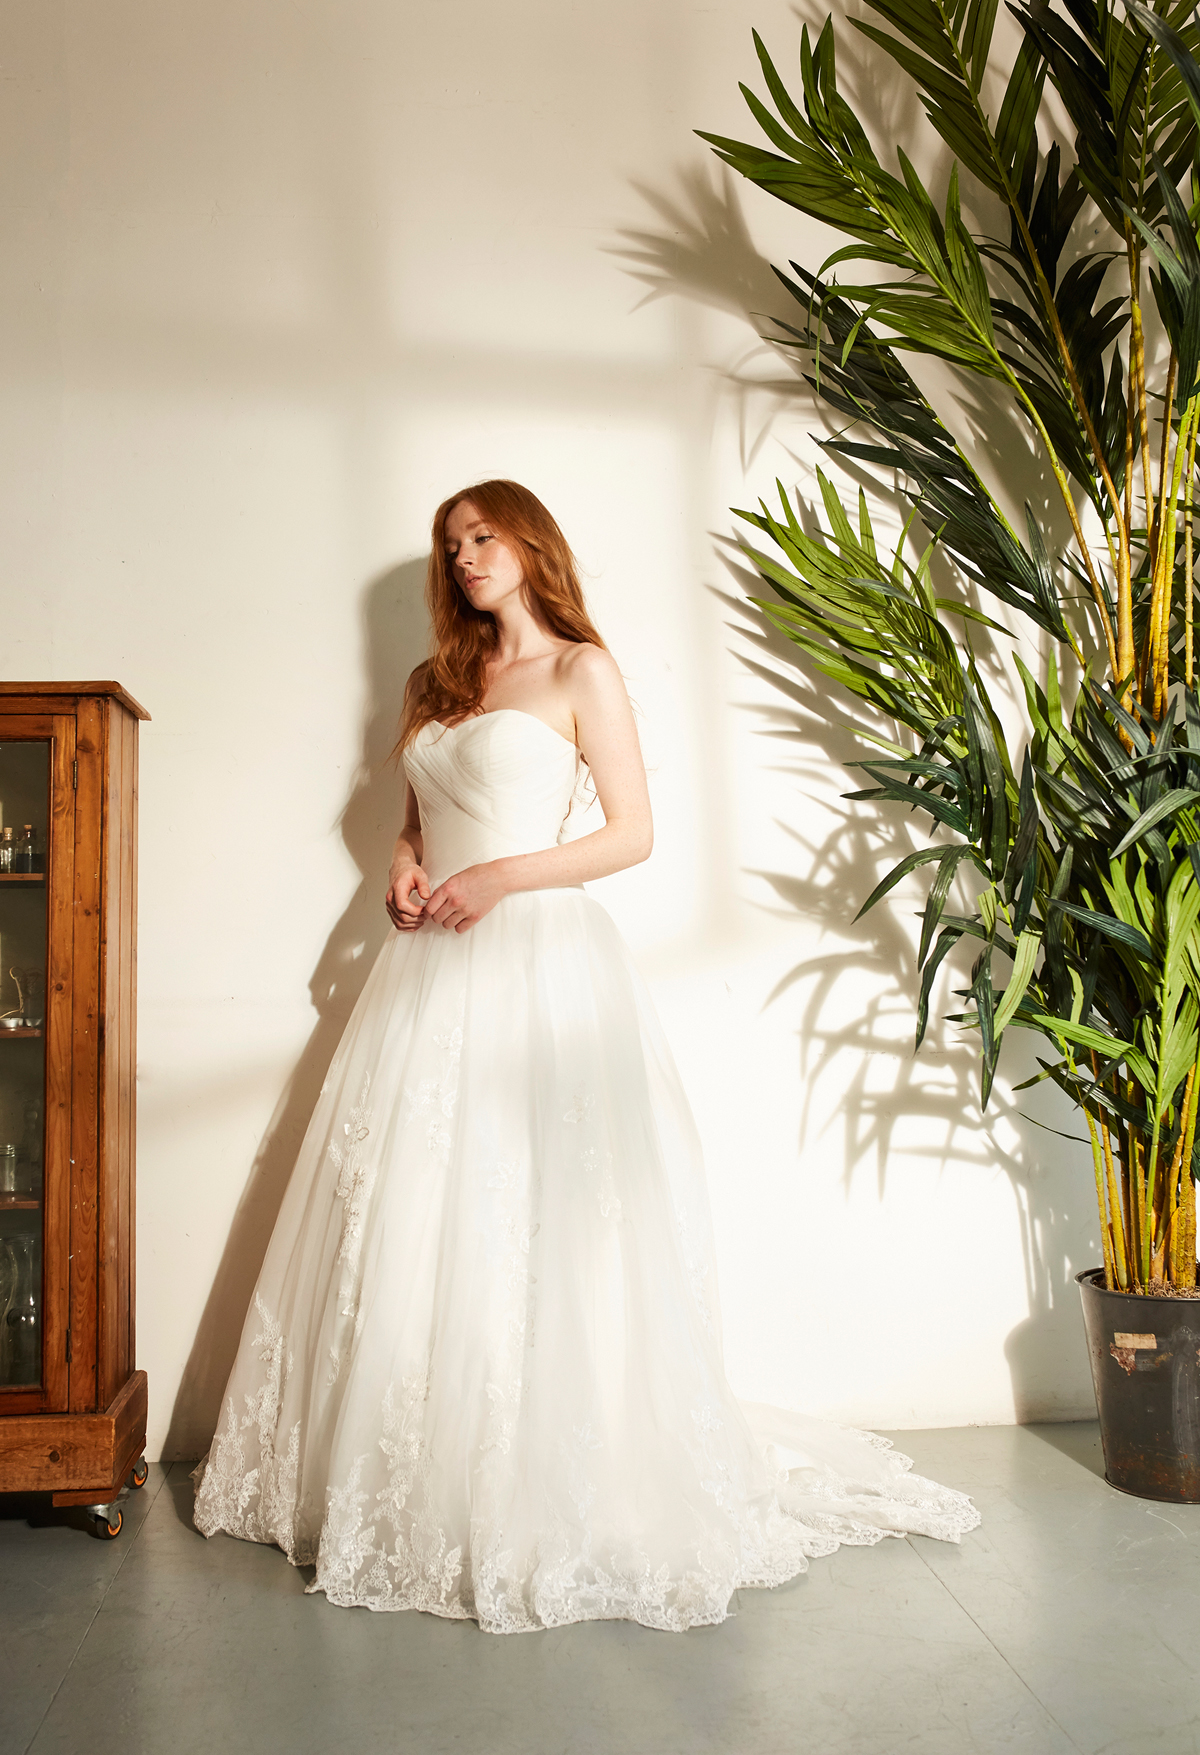 Beautiful Affordable Made To Measure Wedding Dresses From Aneberry Love My Dress Uk Wedding Blog Wedding Directory,Mother In Law Wears Wedding Dress To Sons Wedding